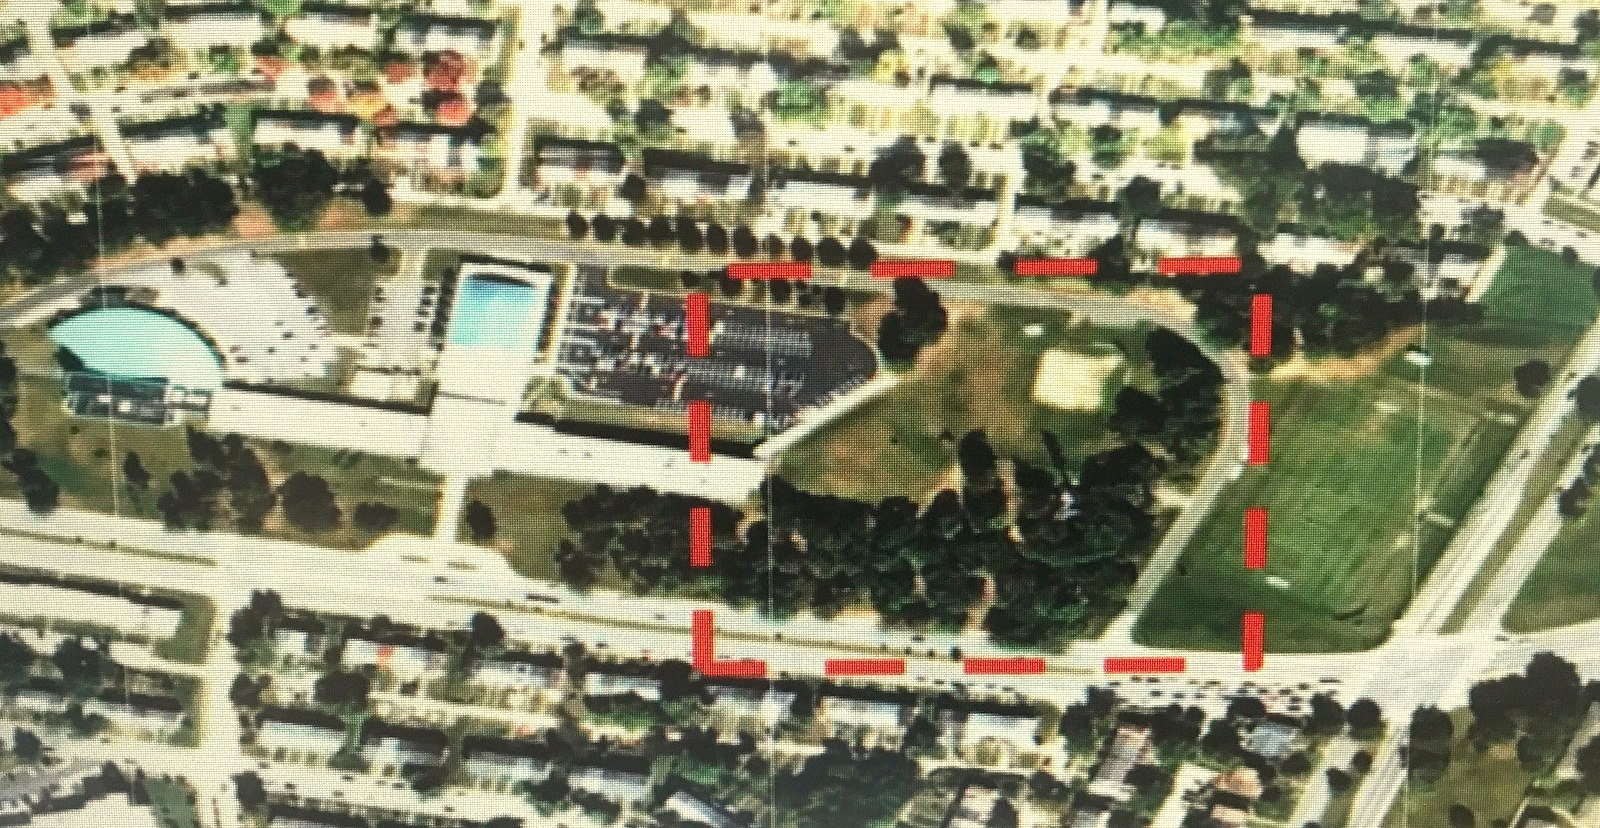 Site of the tree removal (broken red line) at Mercy's 26-acre campus along East Northern Parkway. (Baltimore Planning Department)